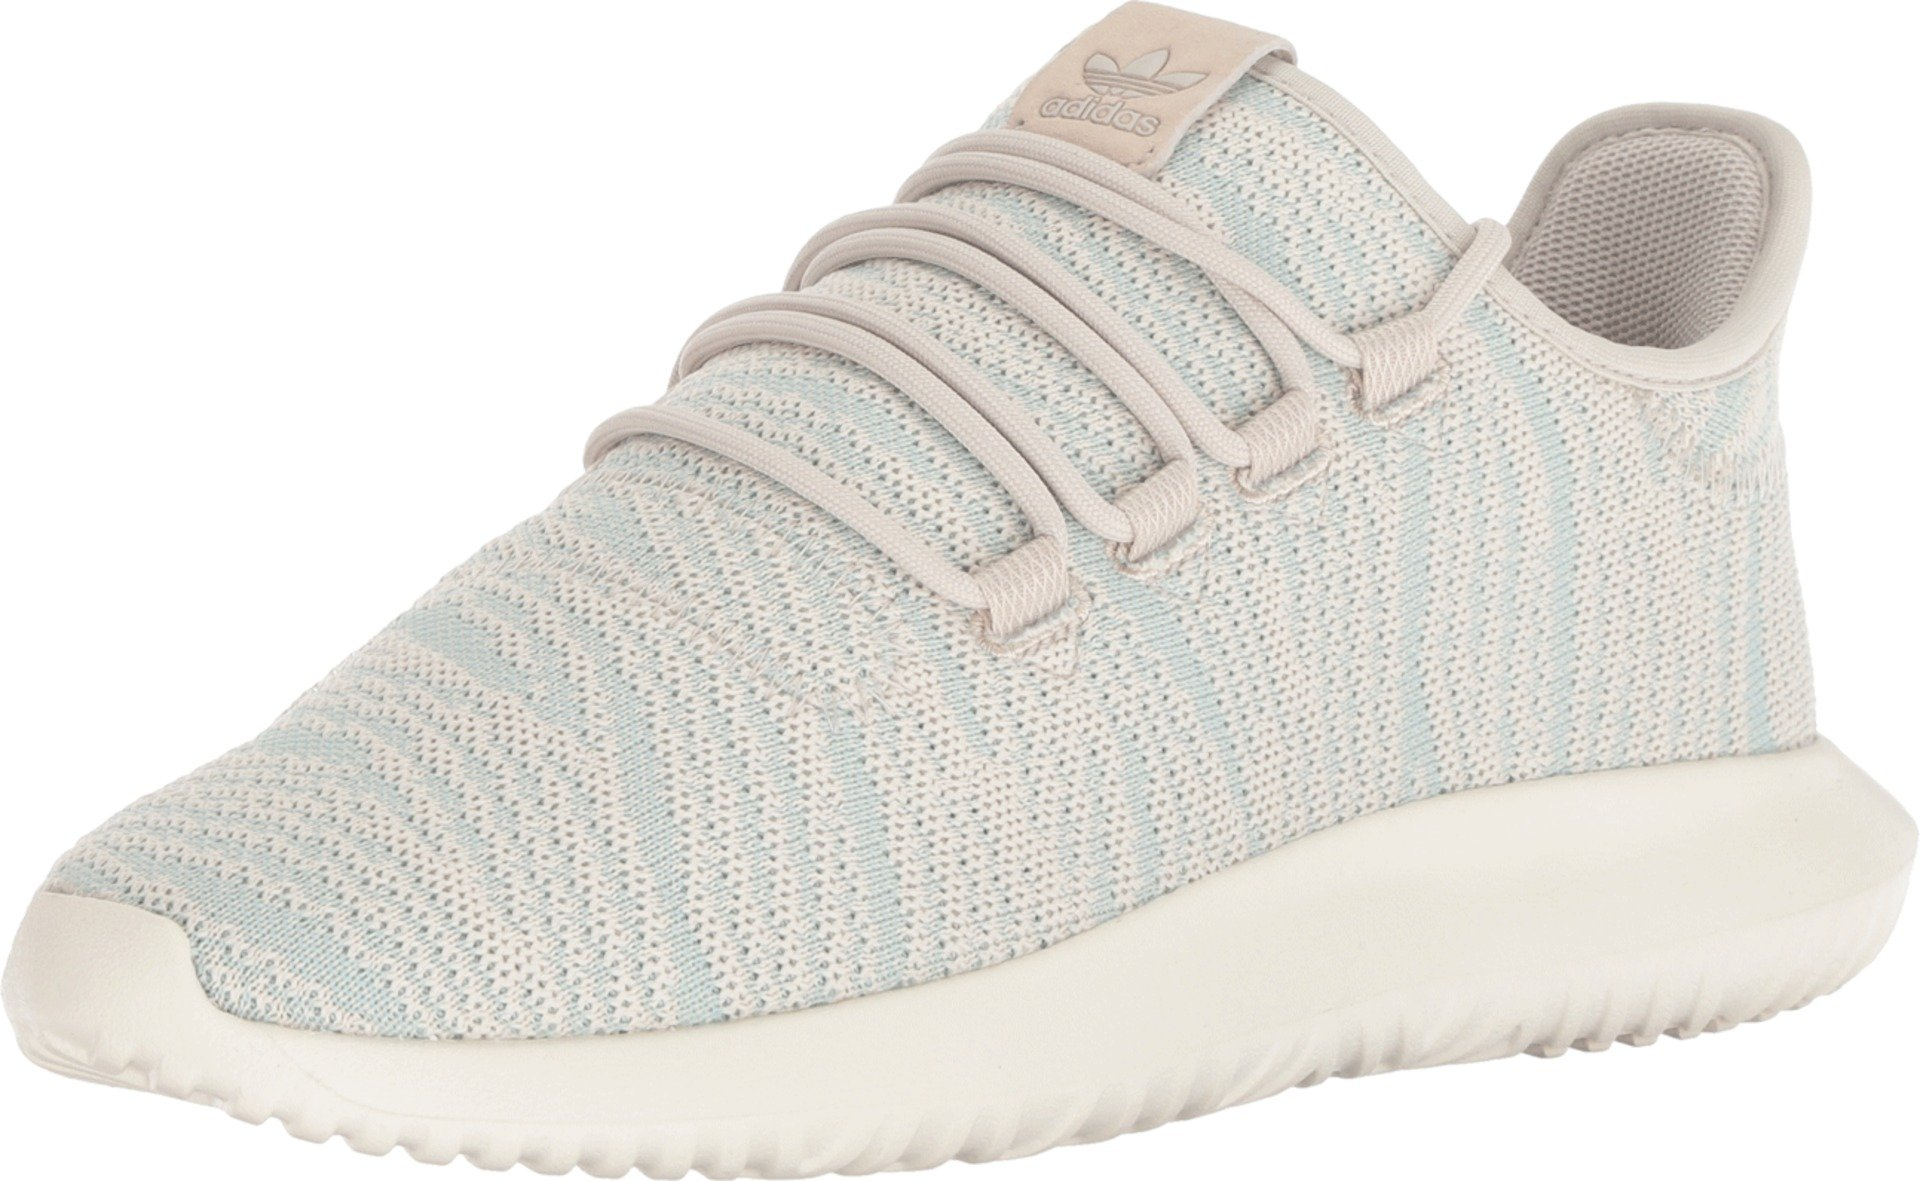 adidas Originals Women's Tubular Shadow W Fashion Sneaker Clear Brown/Ash Green/White  5 B(M) US